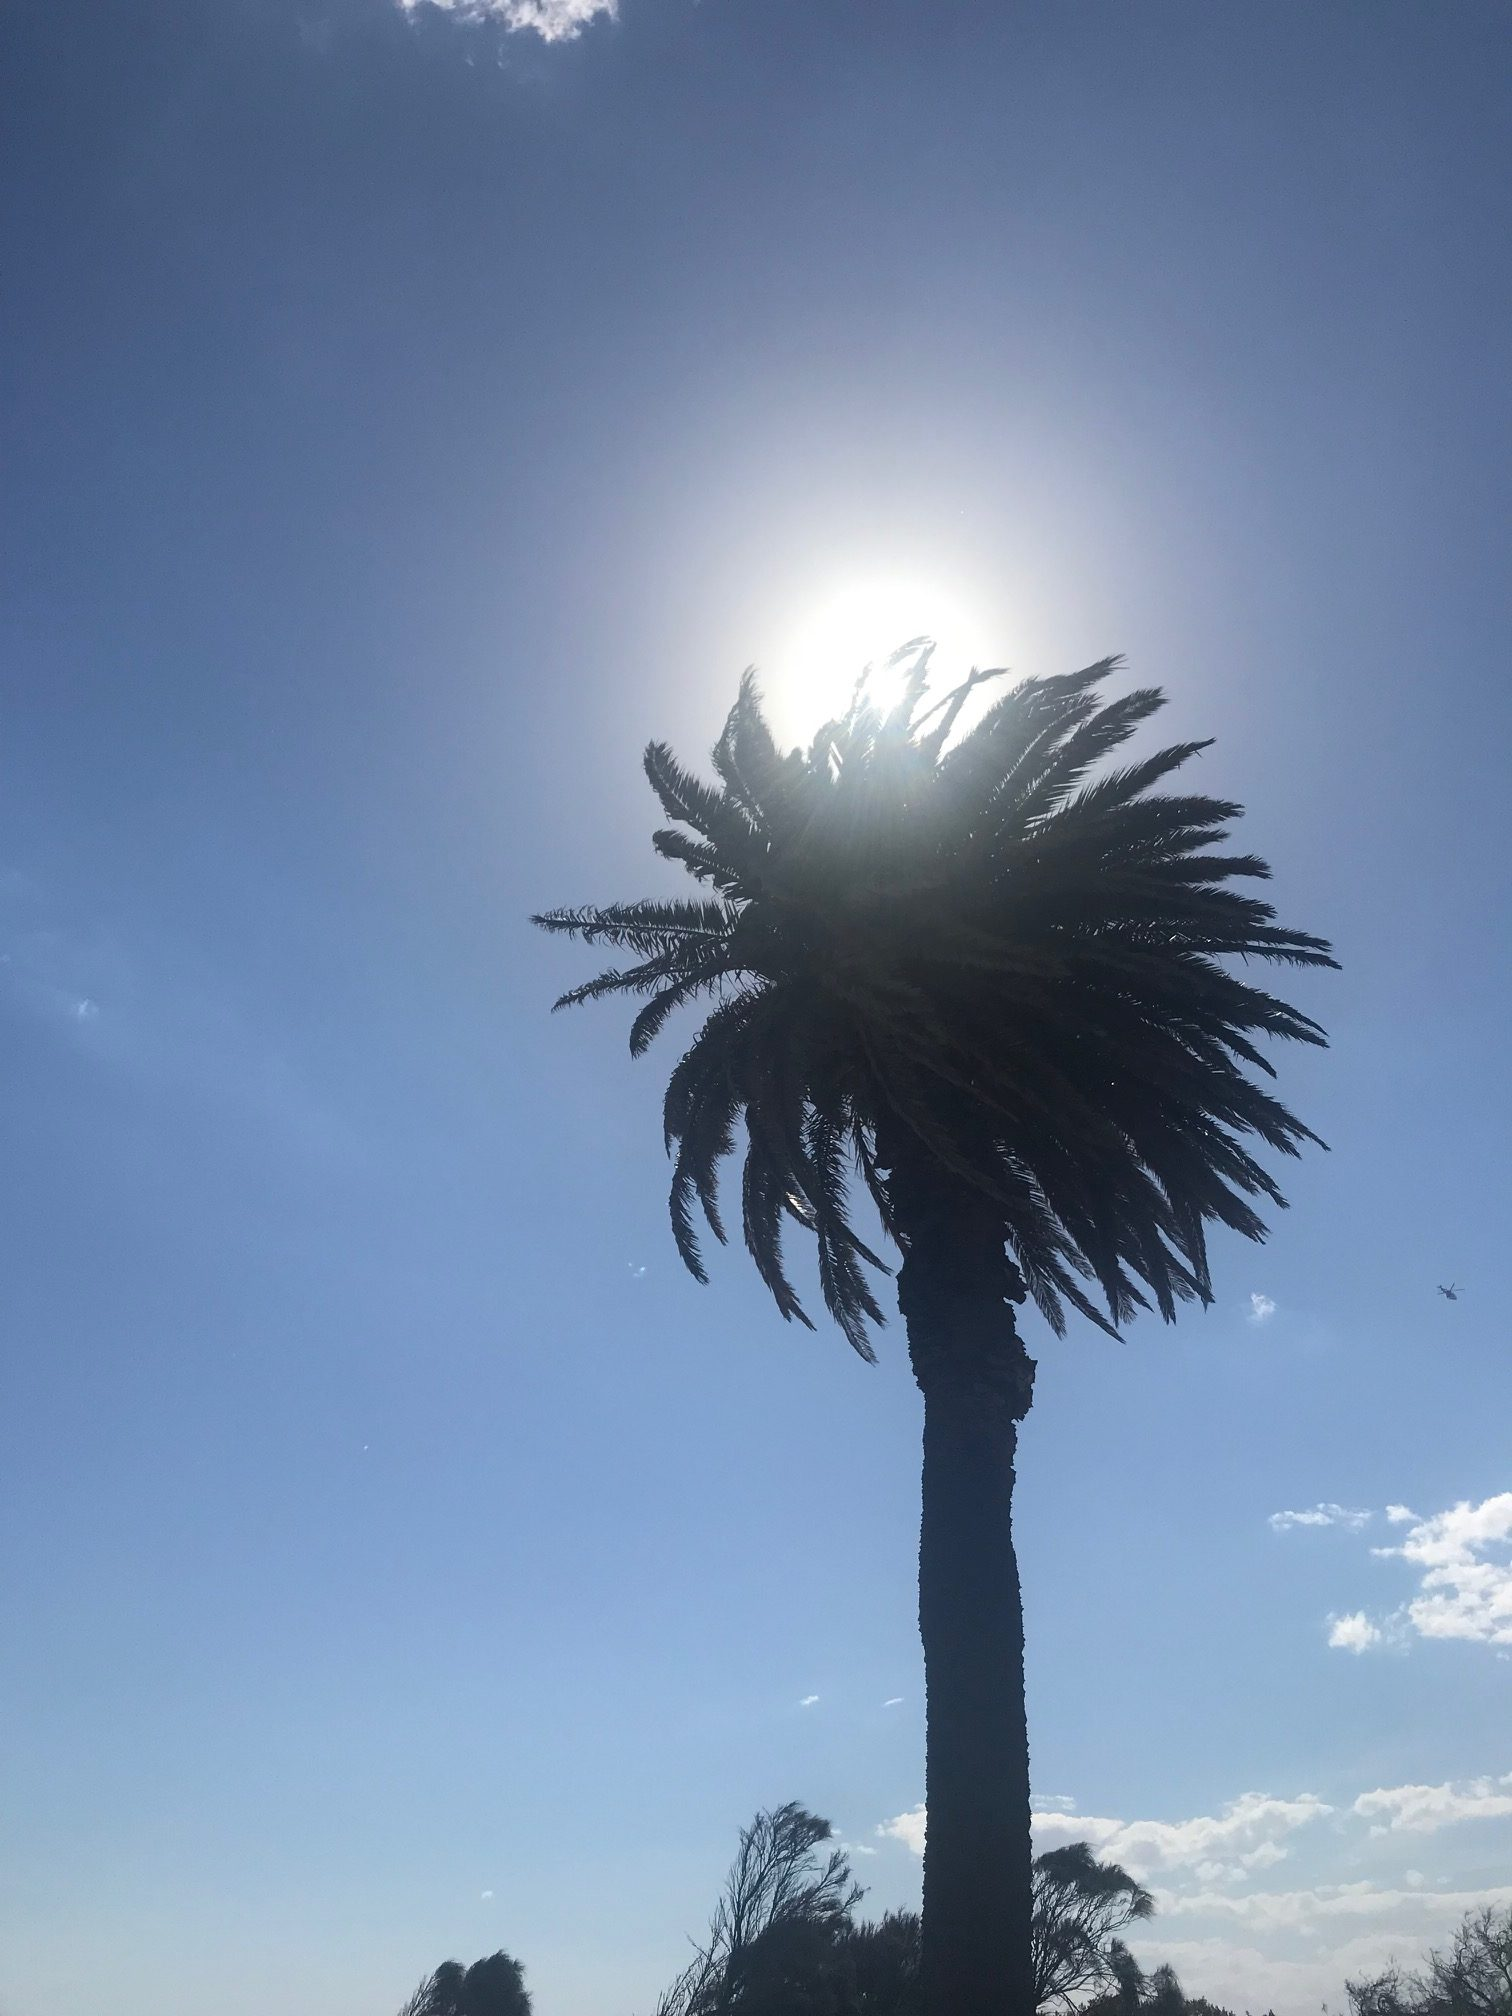 A large palm near Sandringham Lifesaving Club